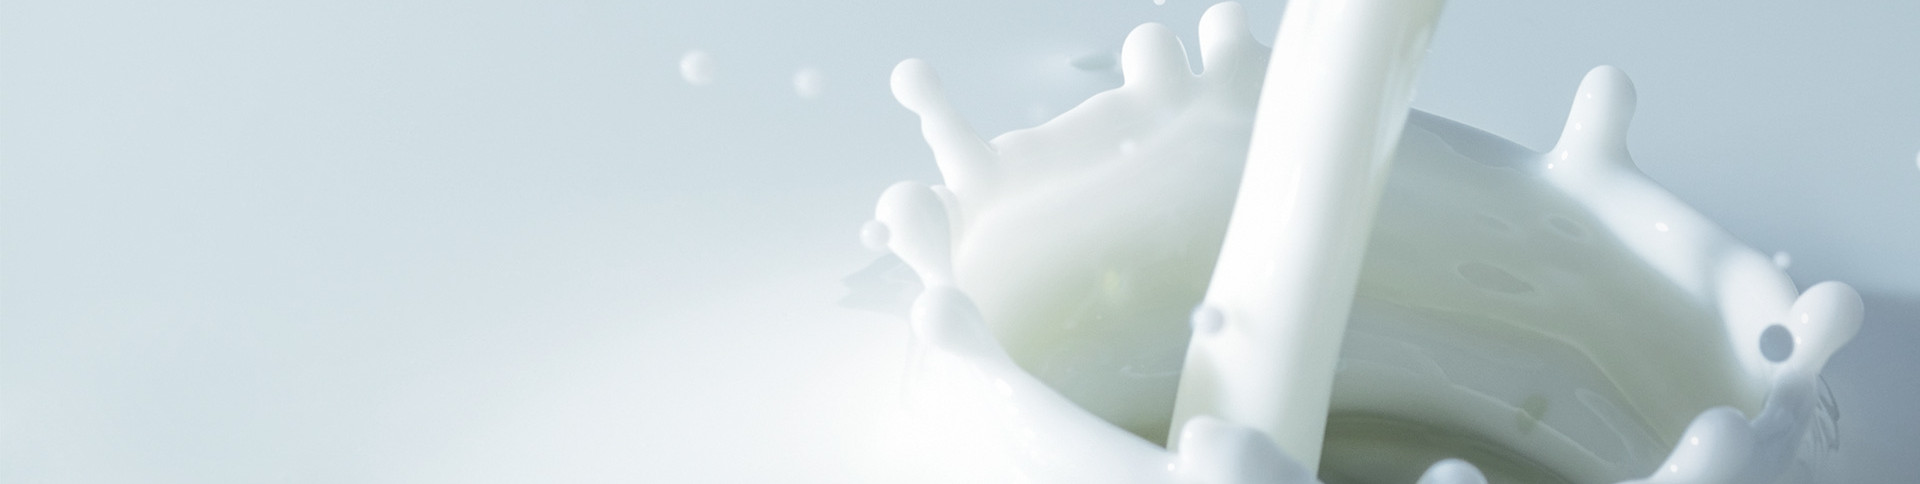 Liquid Dairy Products